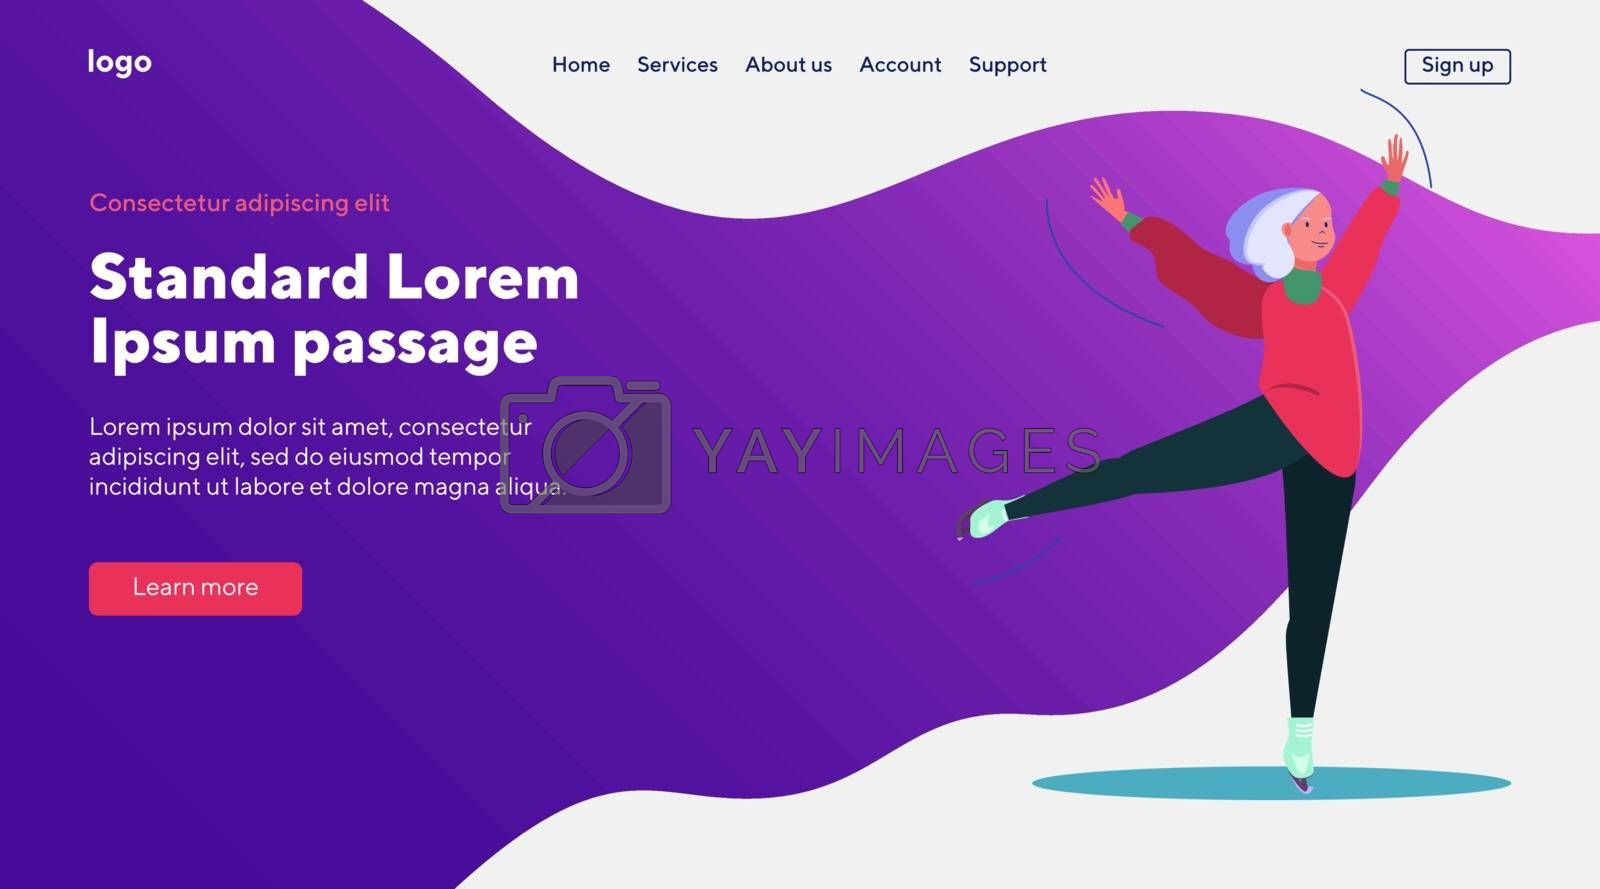 Figure ice skating. Grey haired woman skating, dancing on ice. Flat vector illustrations. Training, winter activity, hobby concept for banner, website design or landing web page